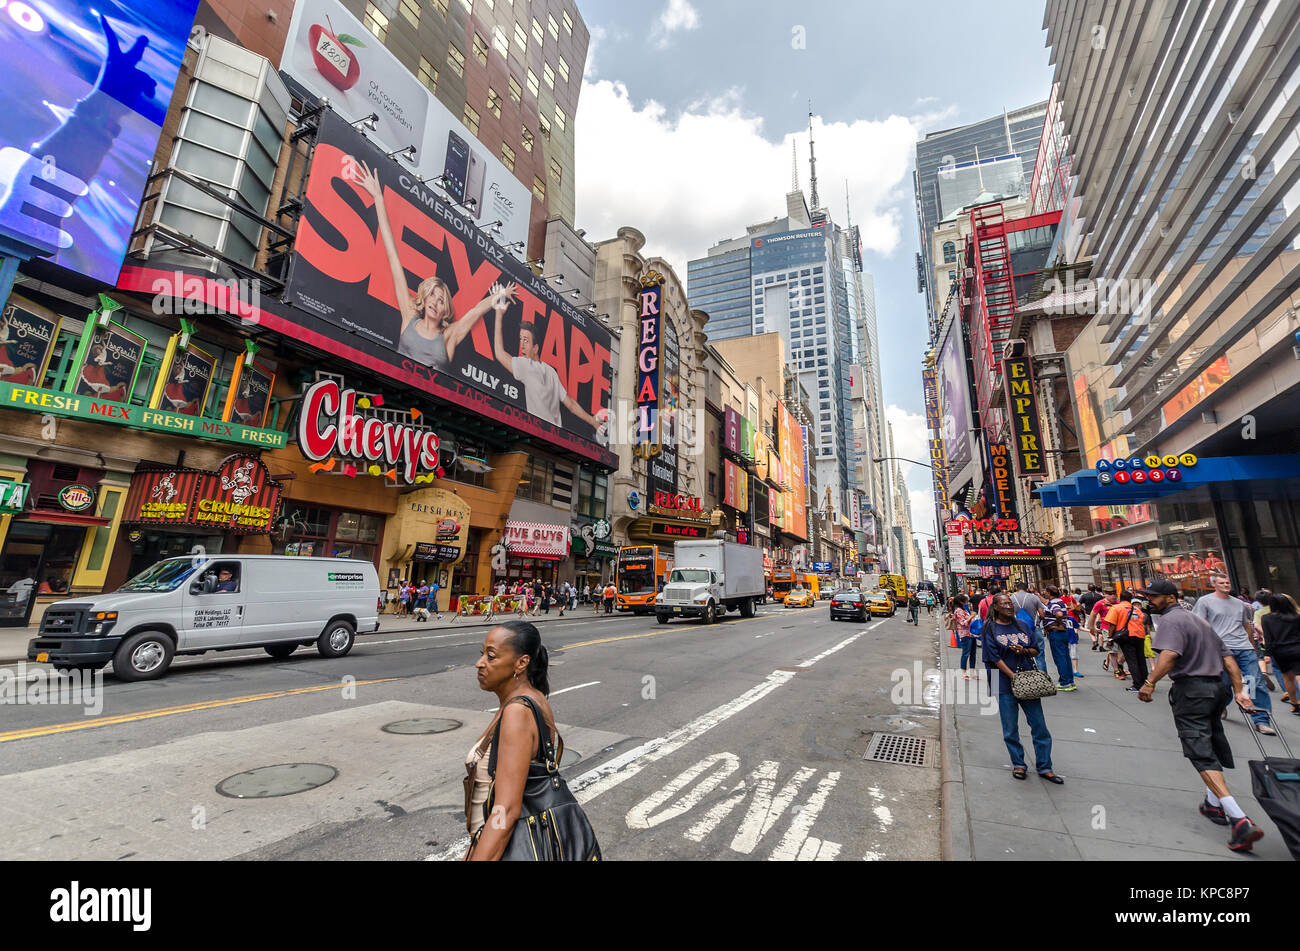 NEW YORK CITY - JUL 22: 42nd Street with traffic and commercials on July 22, 2014 in New York City. 42nd Street - Stock Image